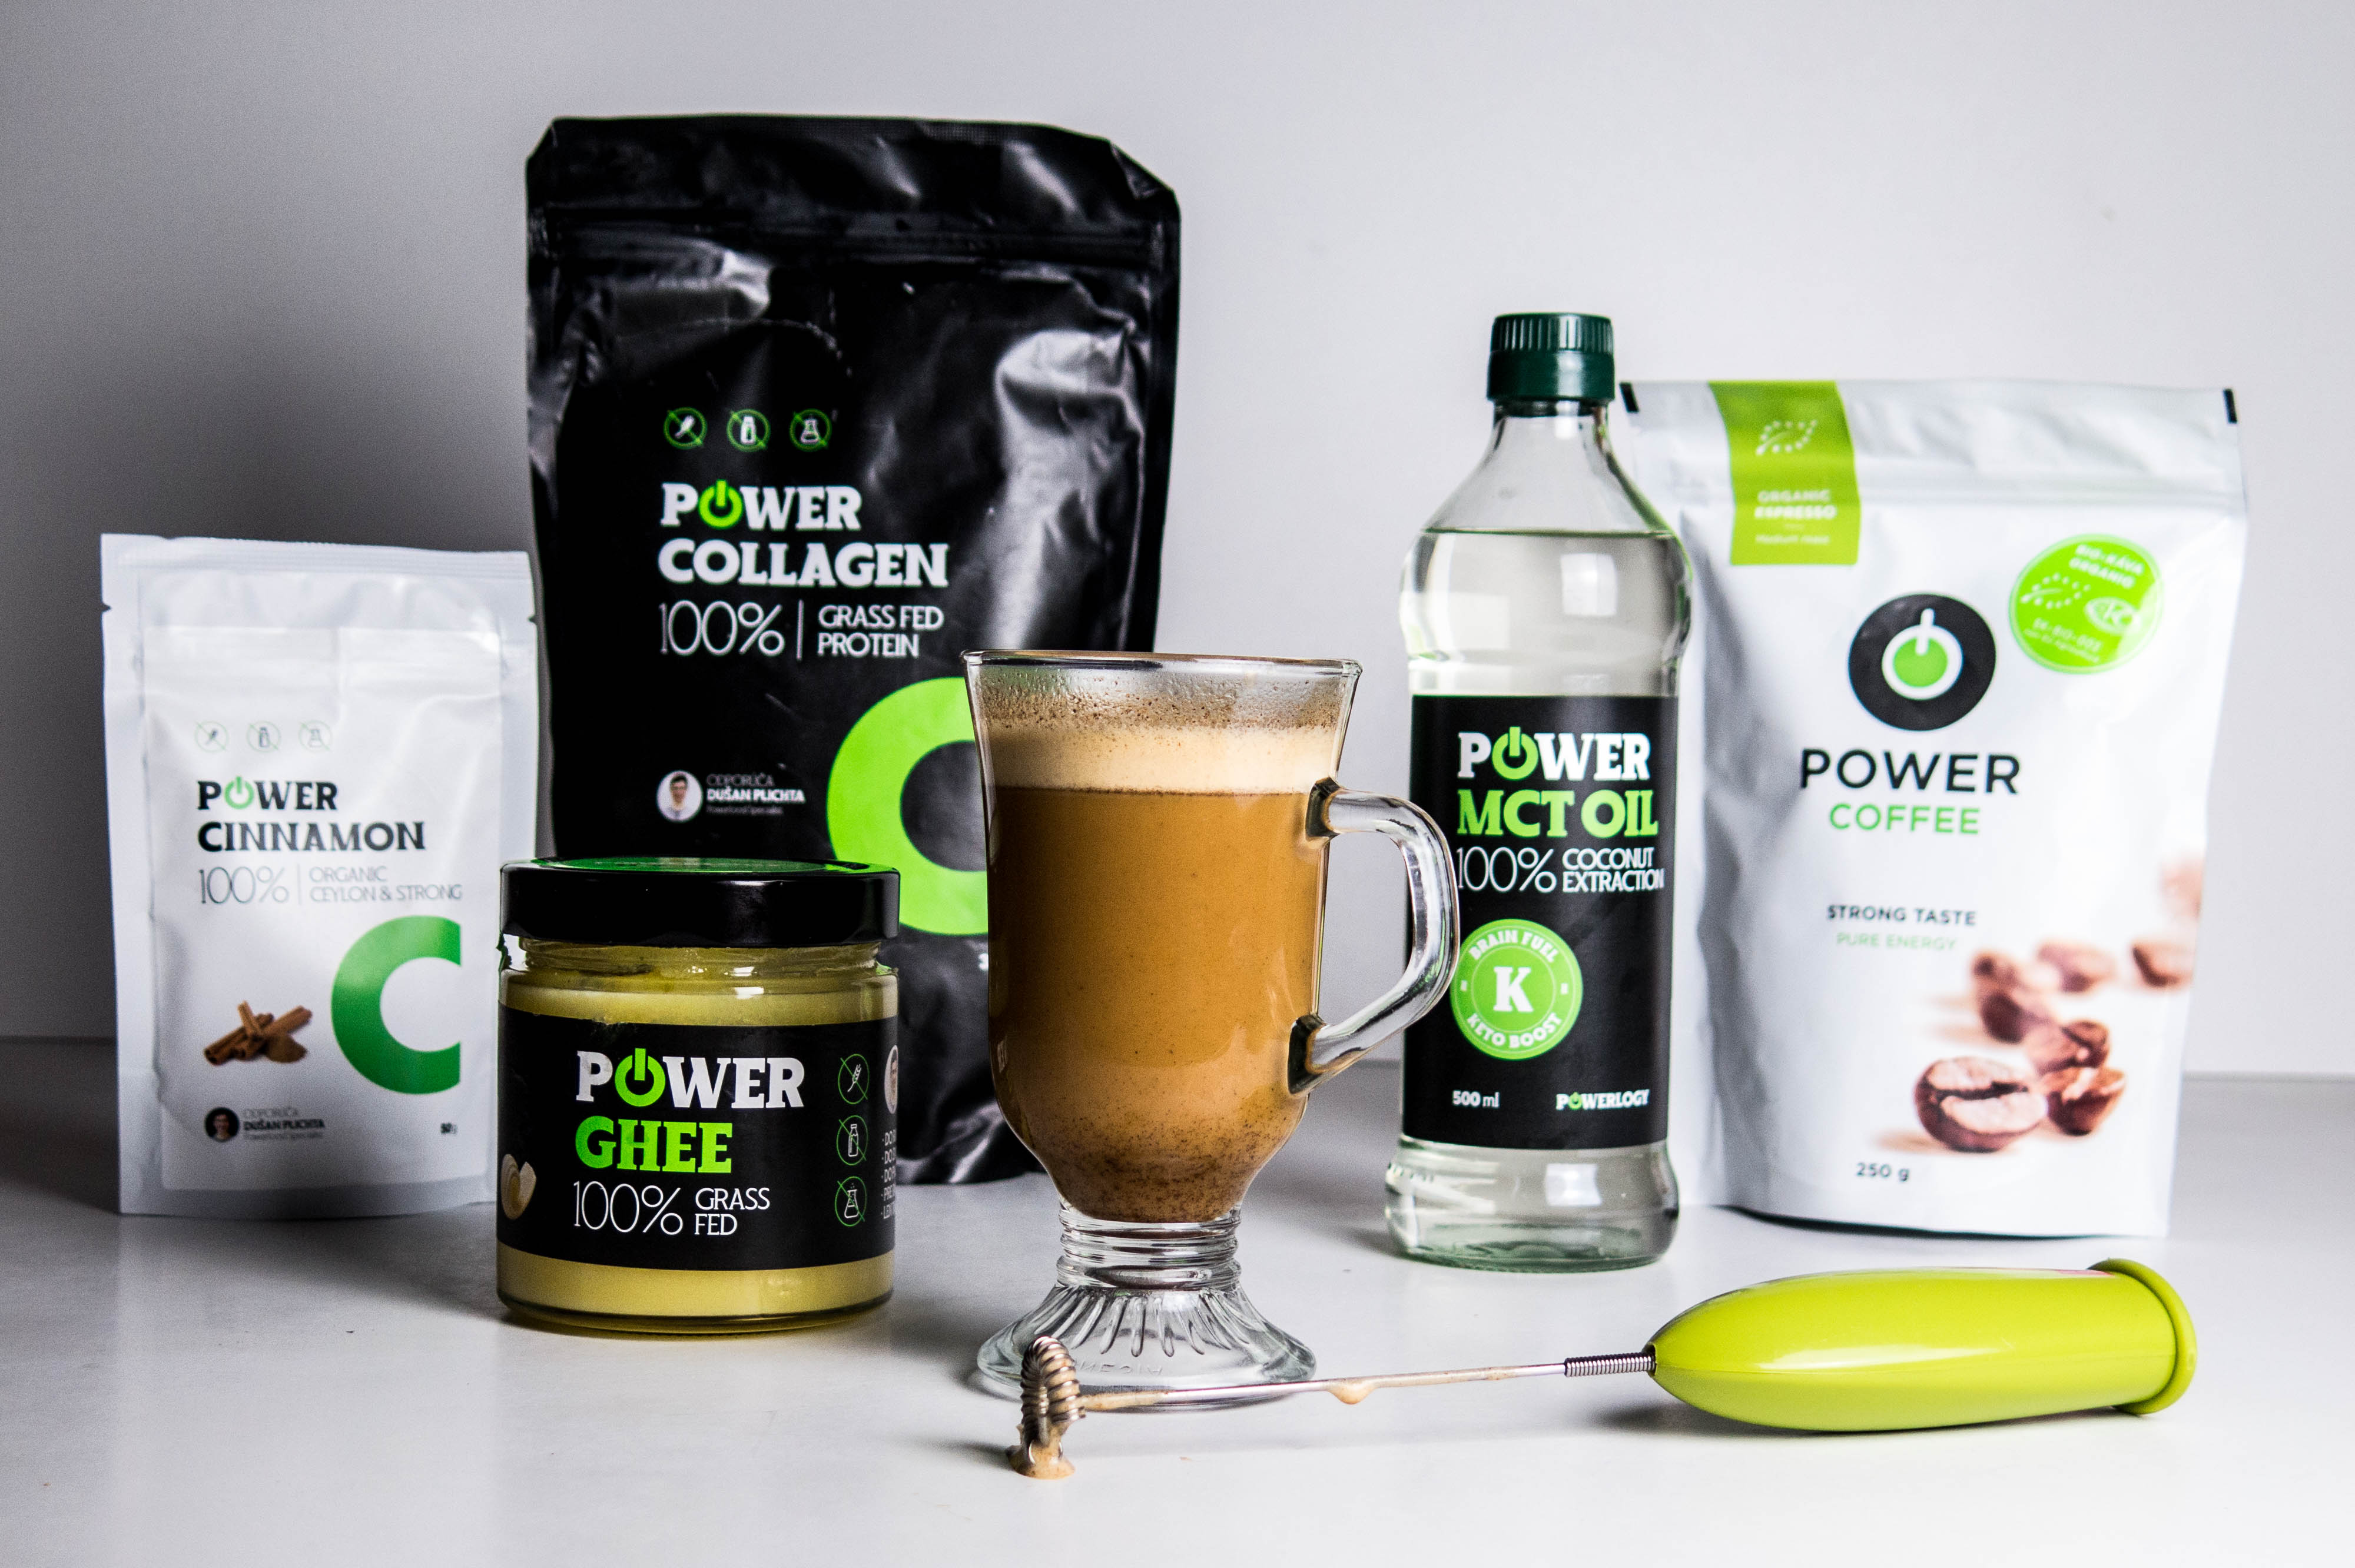 powerlogy dusan plichta bihacking power coffee mct olej collagen maslo ghee efektivne ranajky